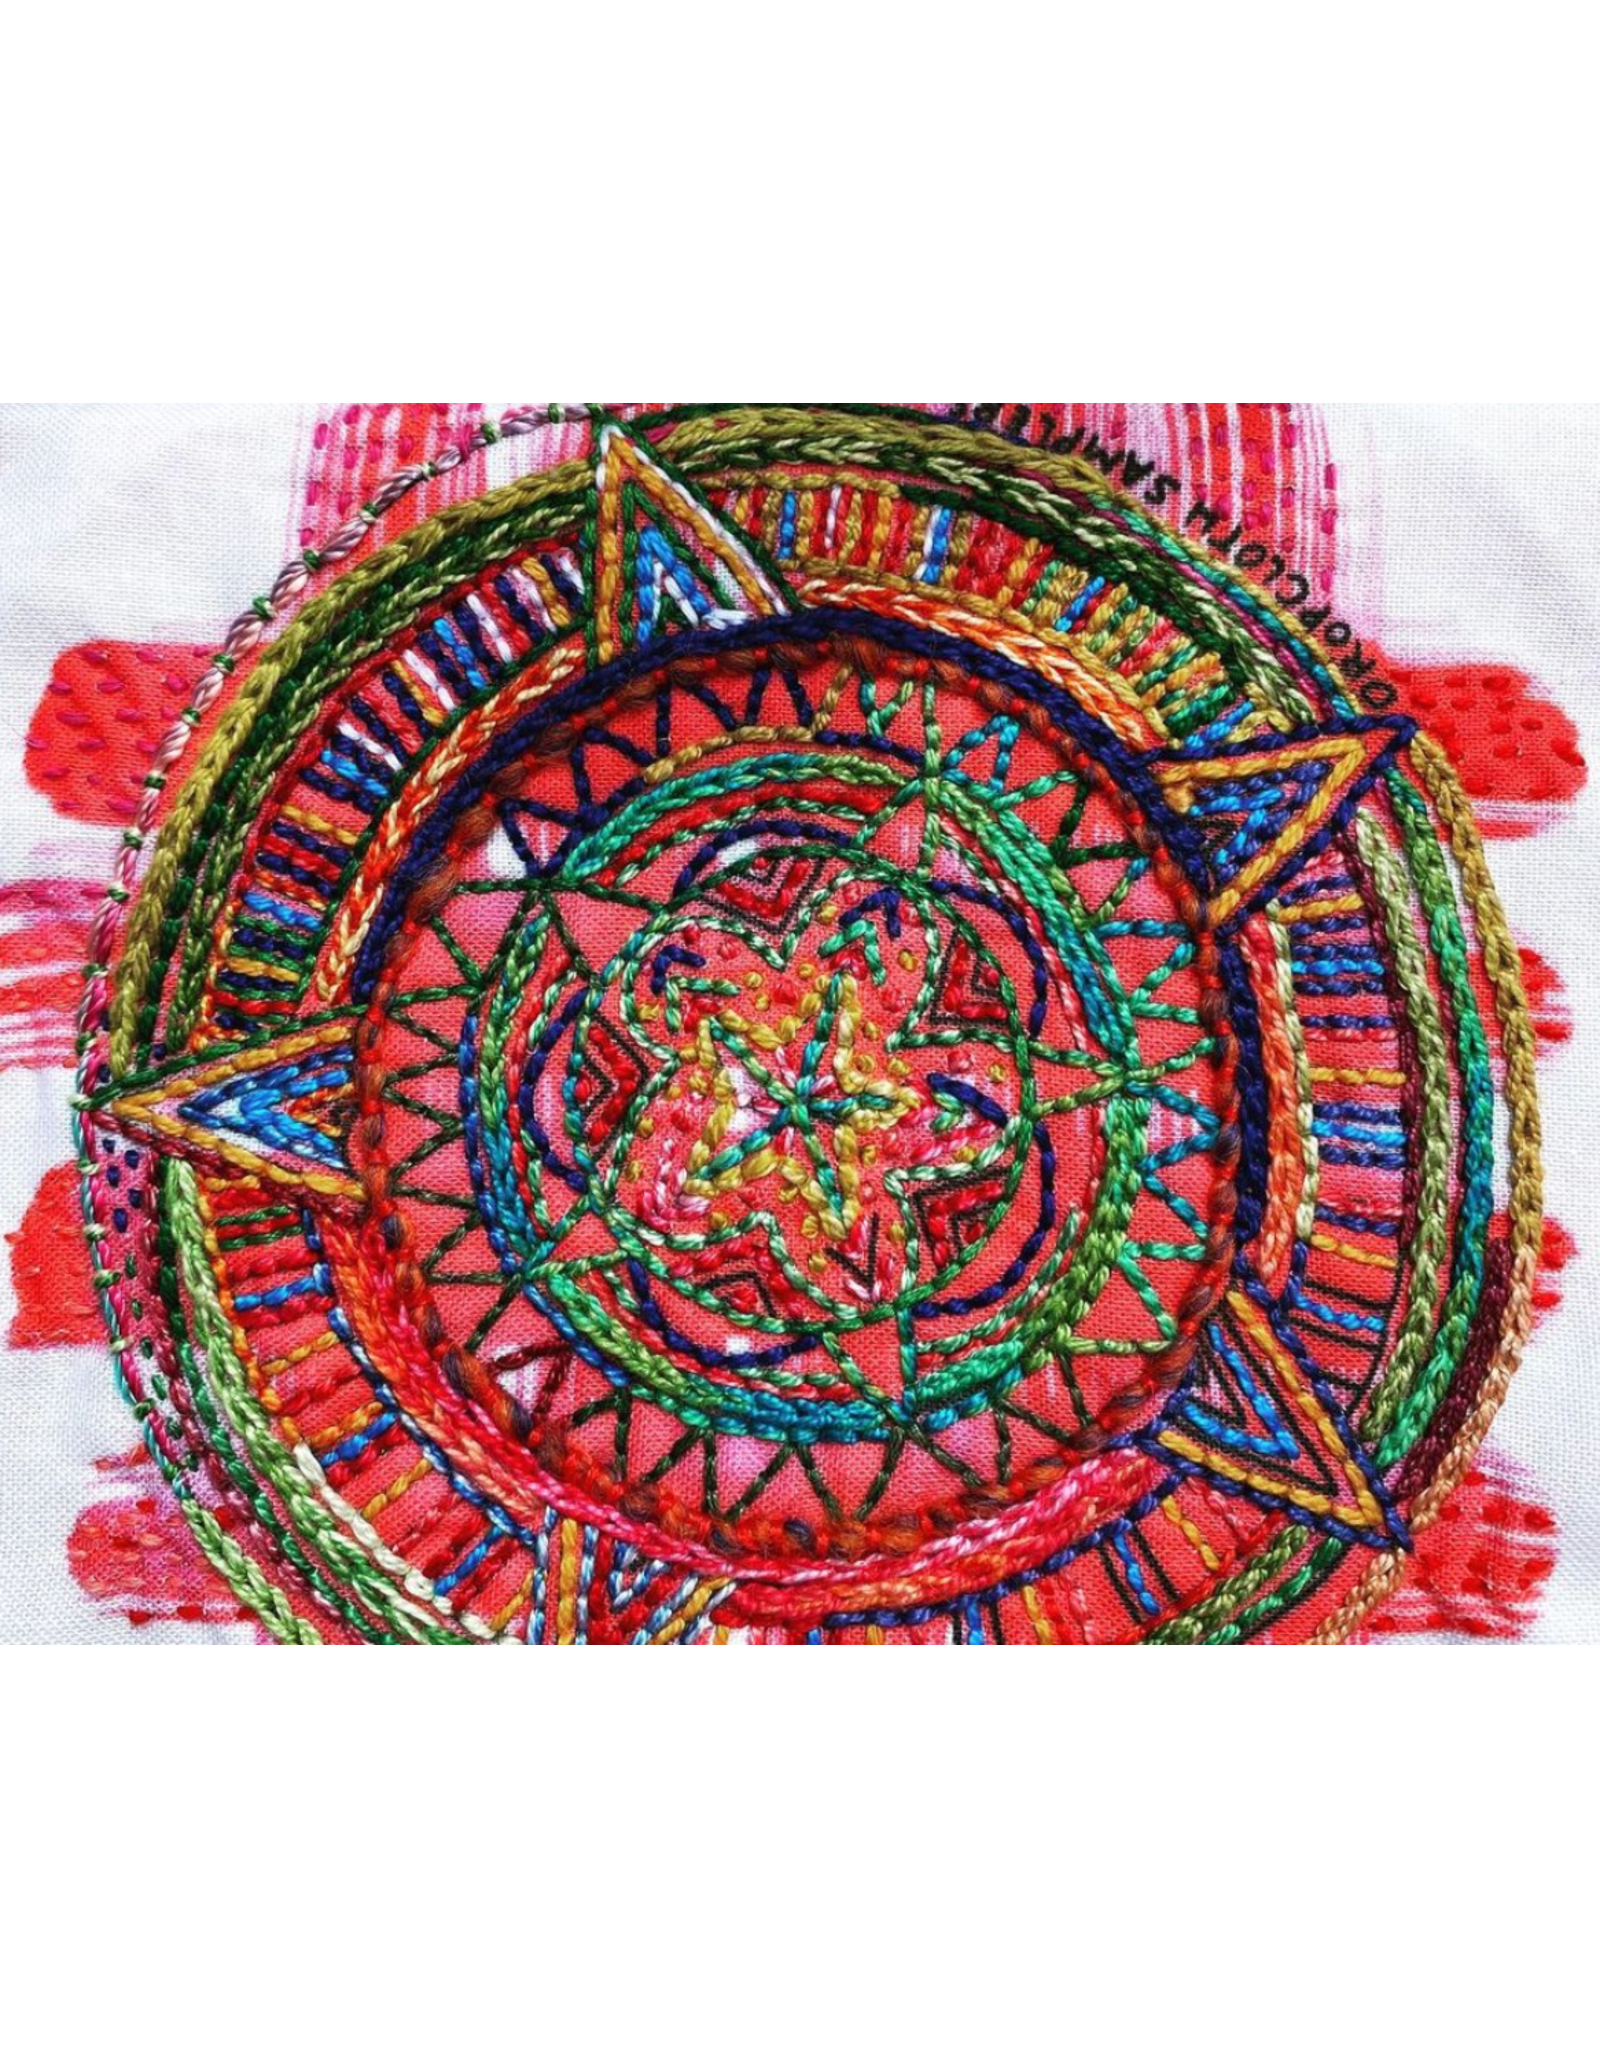 Dropcloth Samplers Compass Sampler,  Embroidery Sampler from Dropcloth Samplers